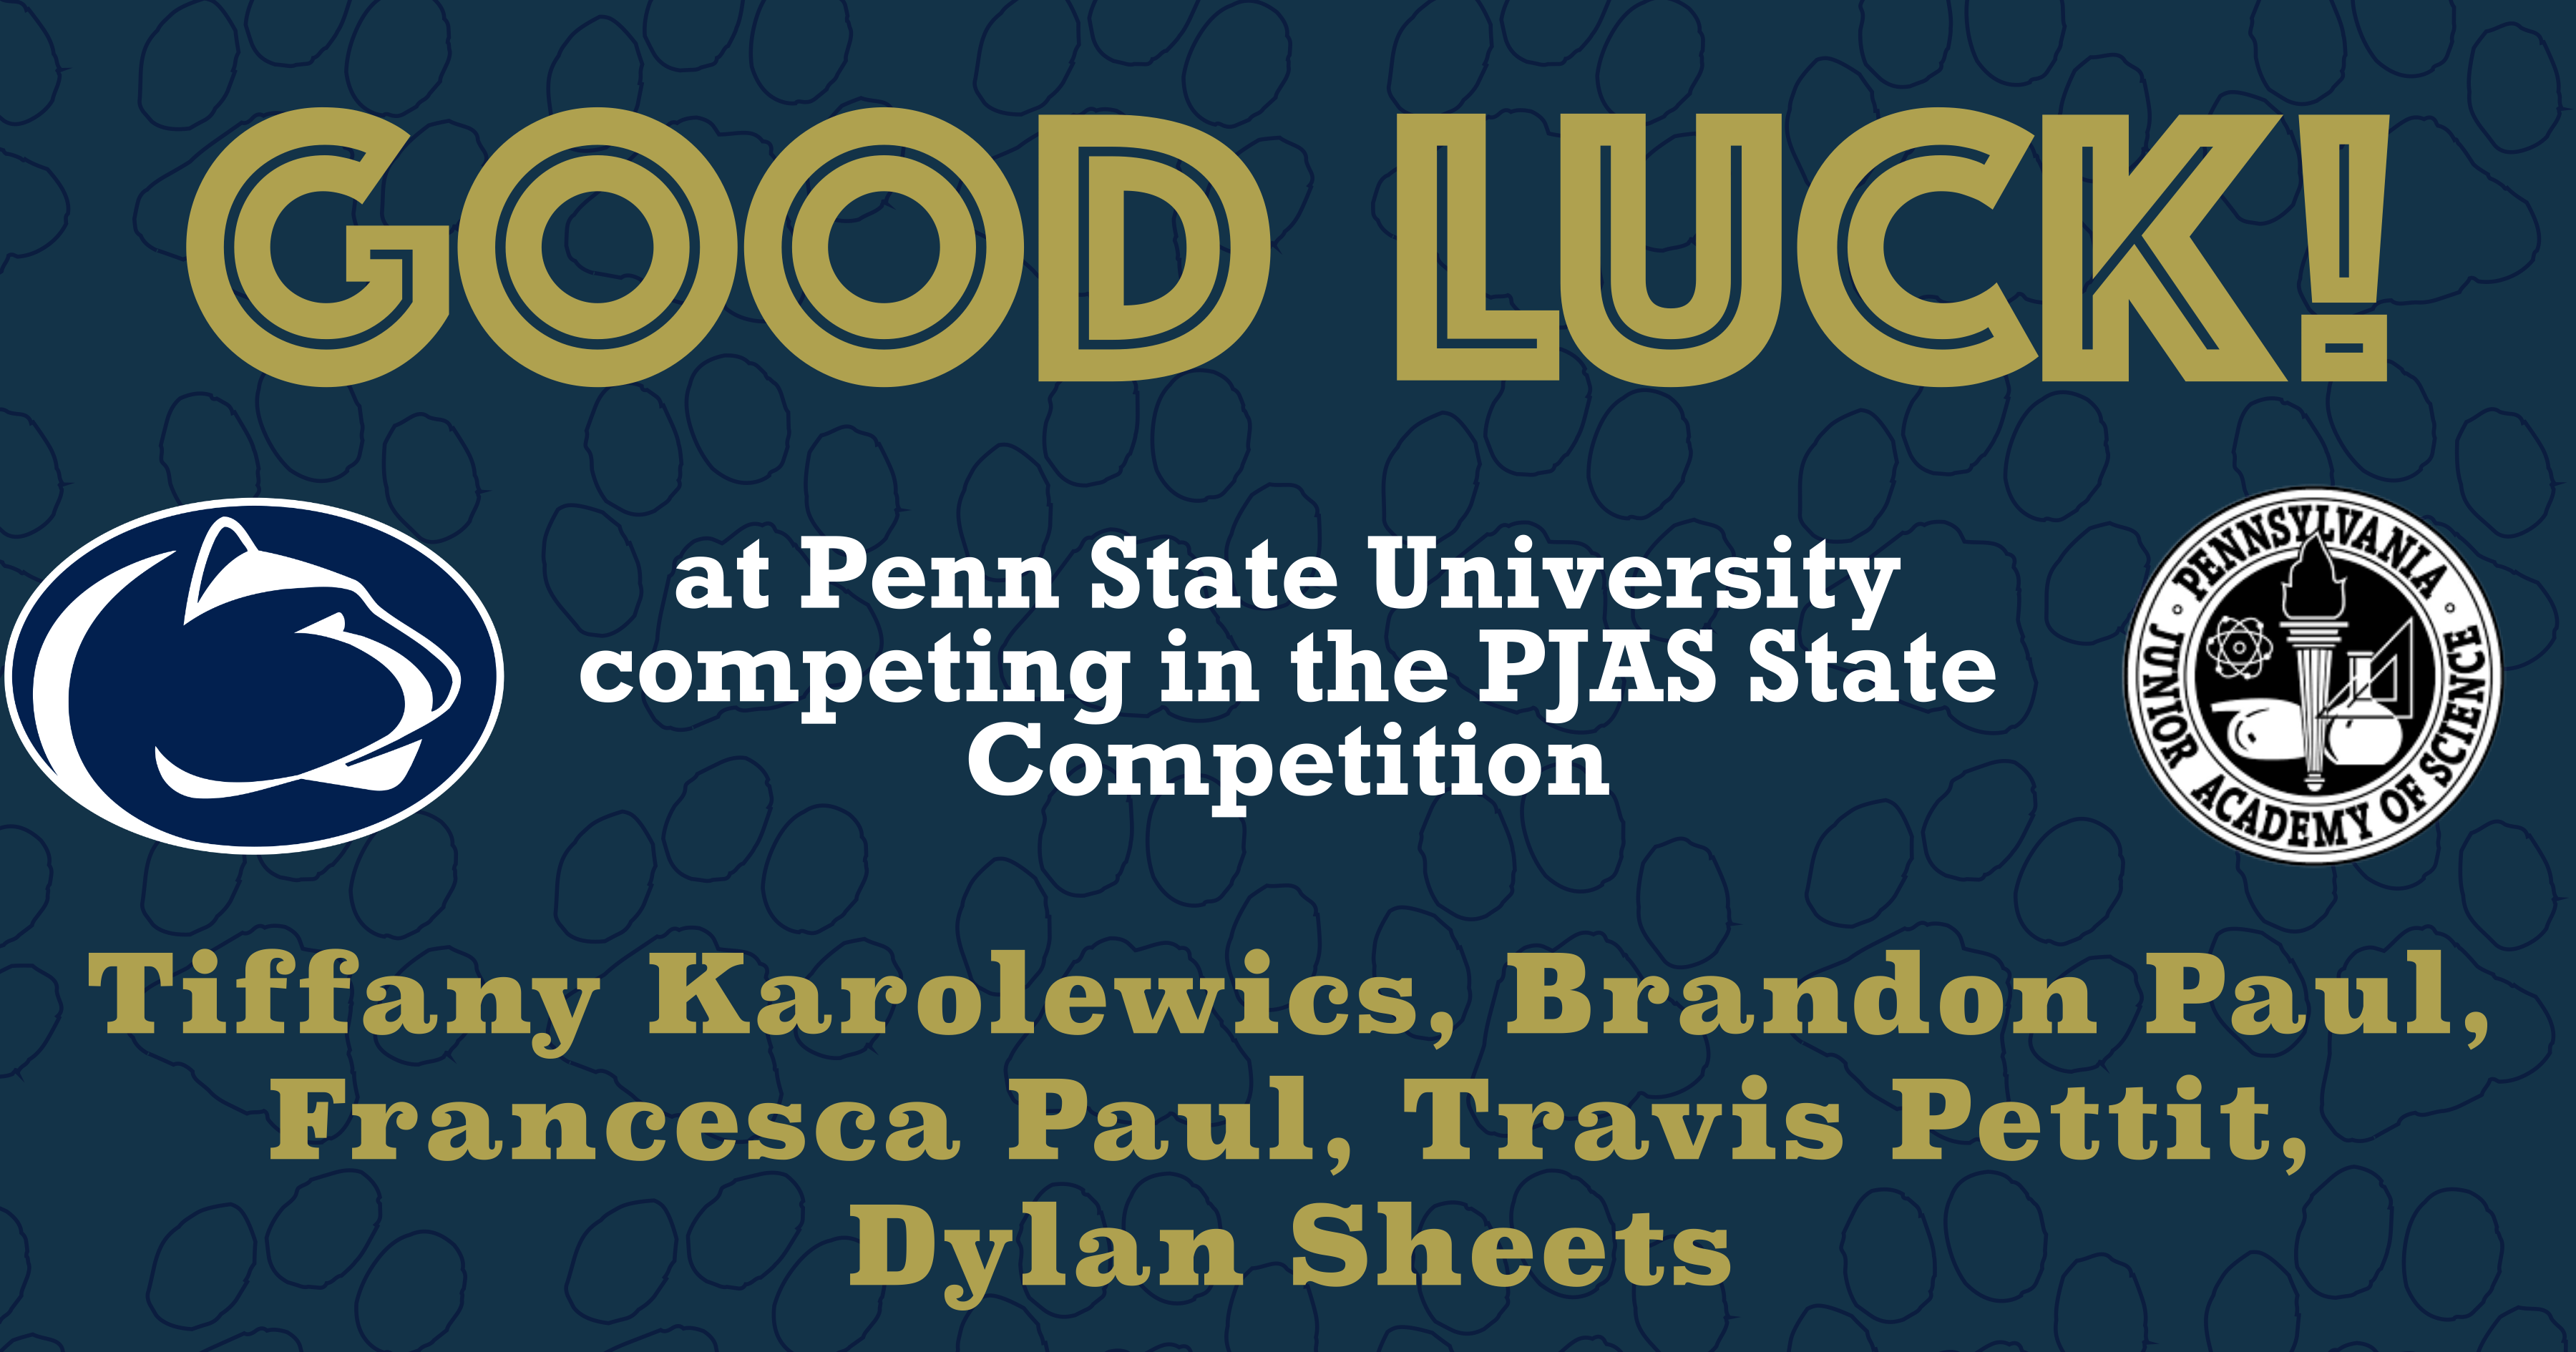 GOOD LUCK AT THE PJAS STATE COMPETITION!